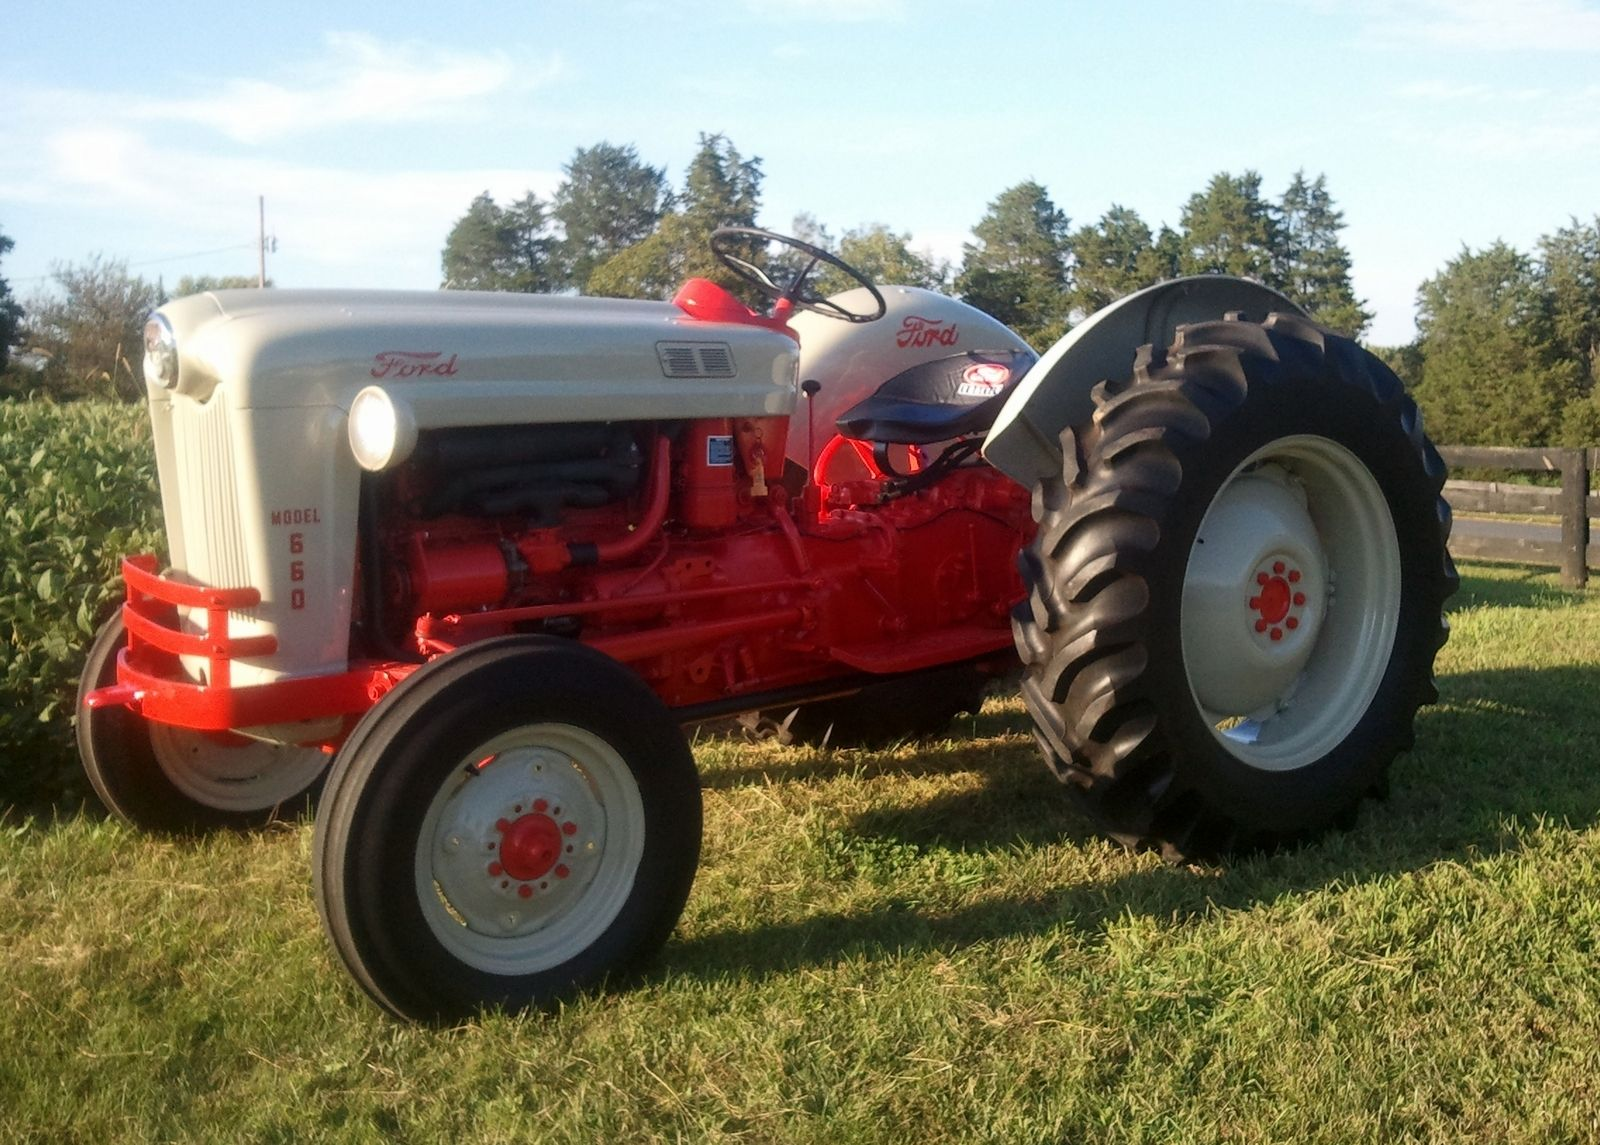 Old tractors 1957 ford model 660 steve mallory madison va purchased from the